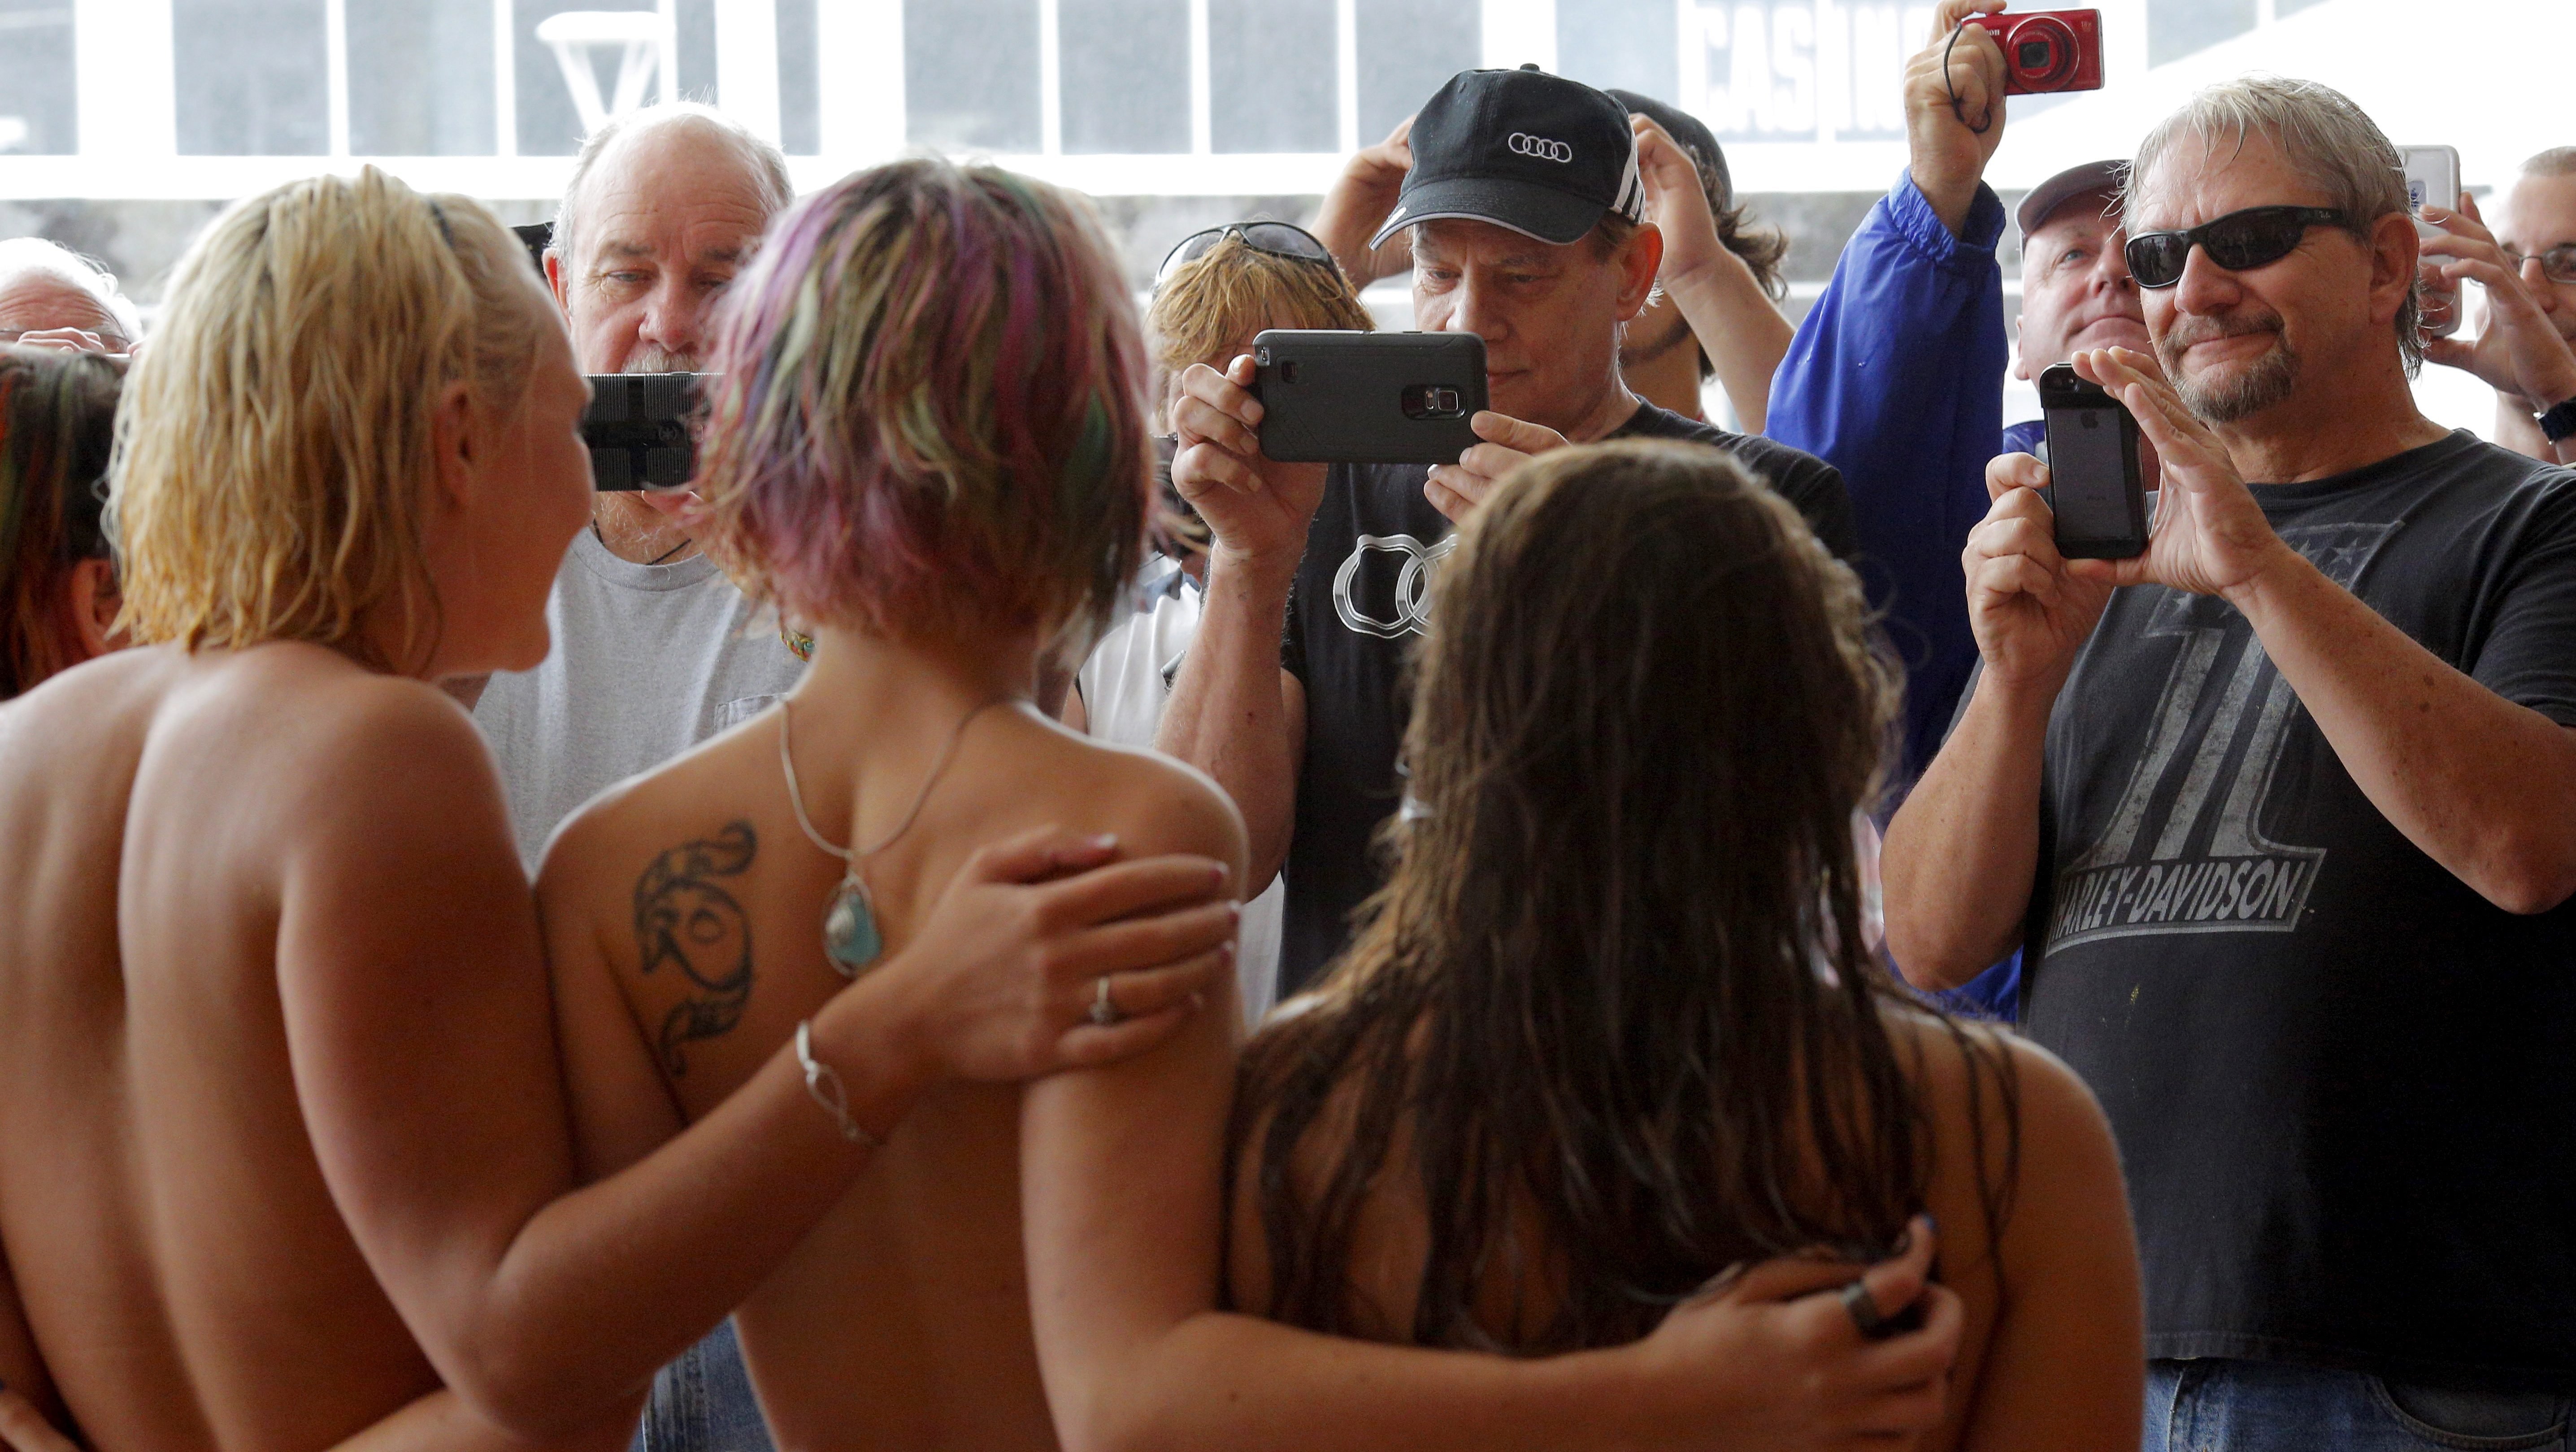 """Topless activists pose for photographs for onlookers during a """"Free the Nipple"""" demonstration in Hampton Beach, New Hampshire August 23, 2015. Hundreds of bare-breasted women are expected to converge on a popular New Hampshire beach on Sunday to push for greater acceptance of topless sunbathing, much to the consternation of some local residents and officials.   REUTERS/Brian Snyder - GF10000180542"""